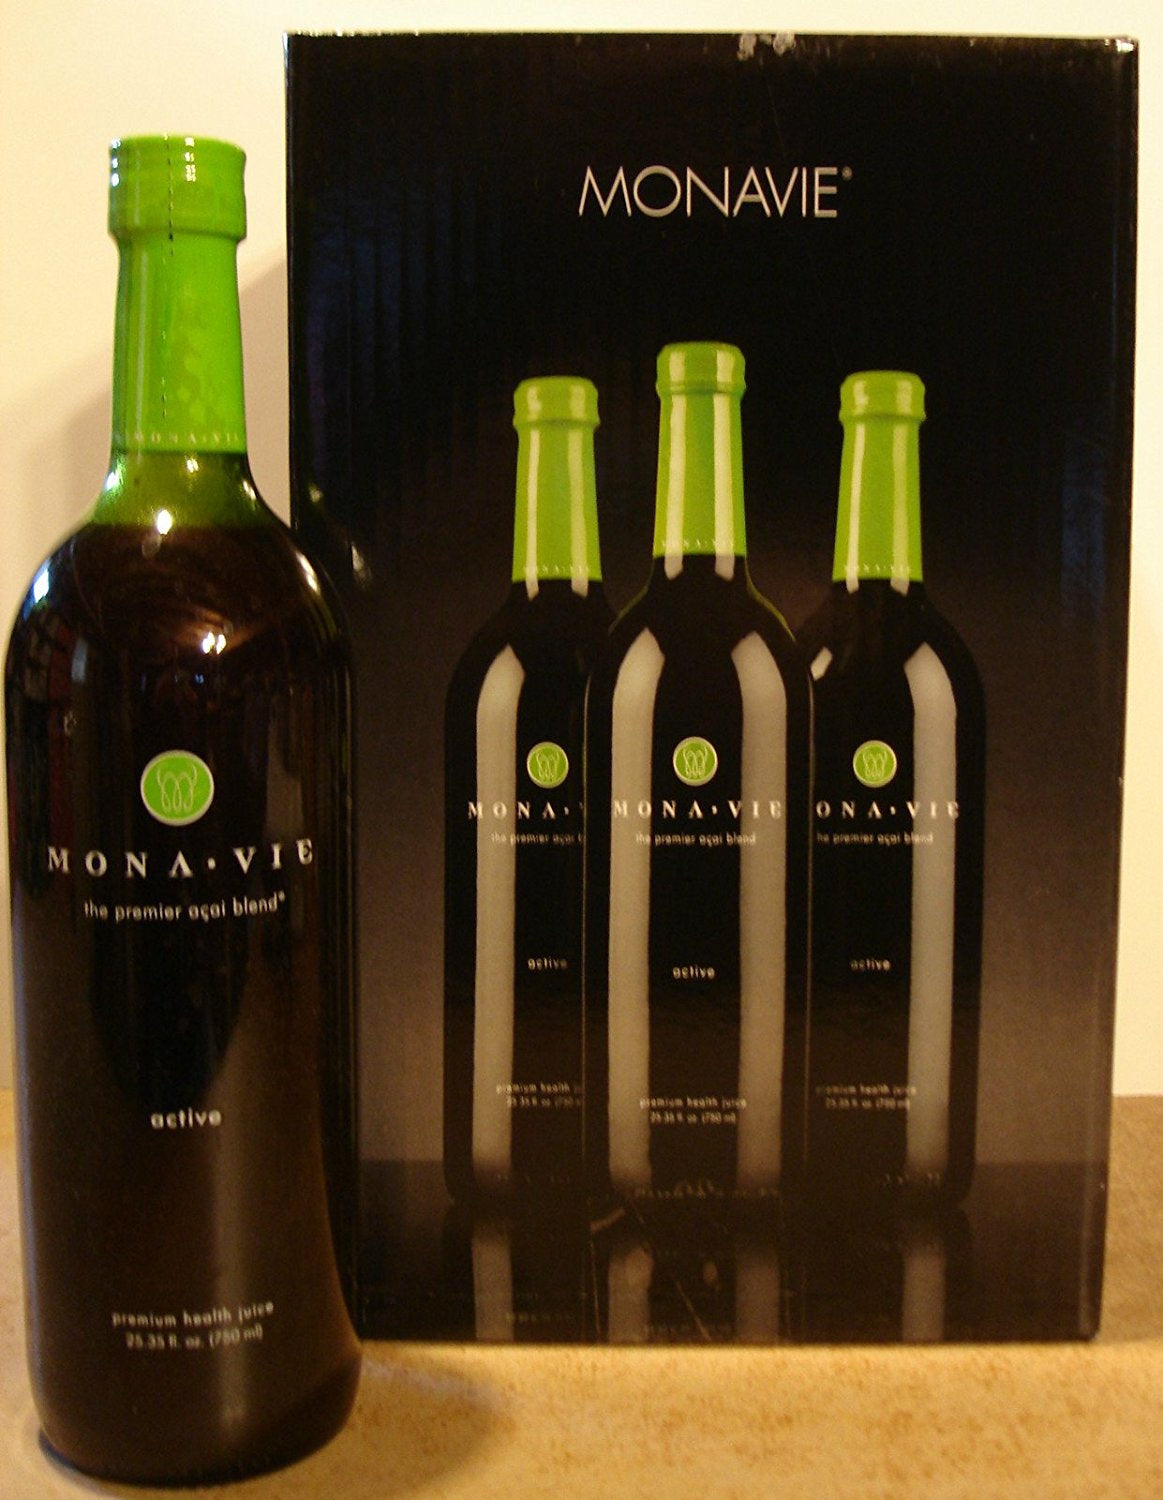 Monavie Active Juice (4 Bottles) Acai Berry